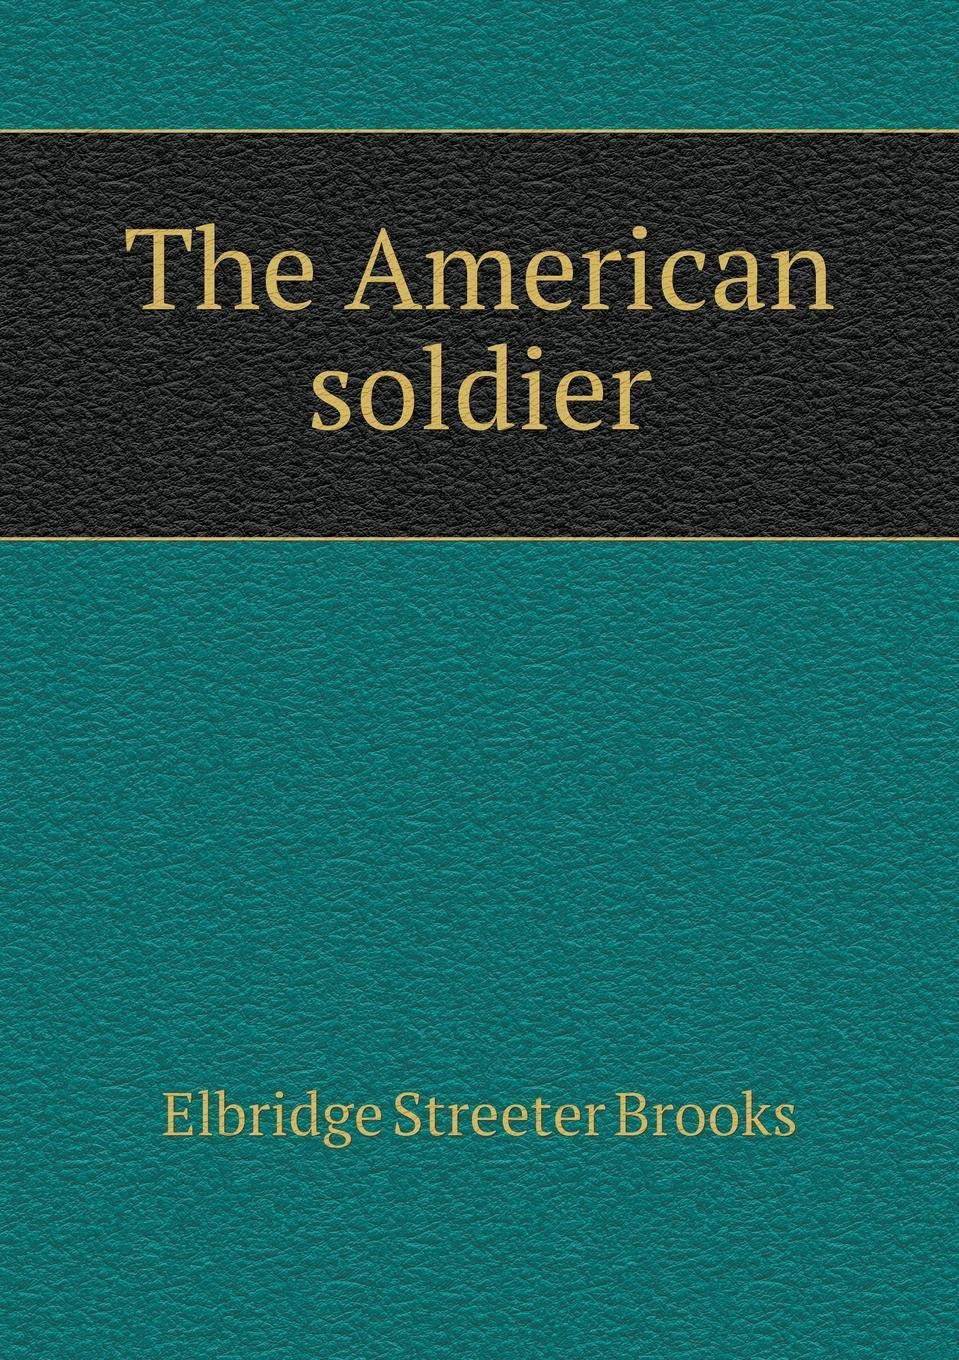 Read Online The American soldier PDF